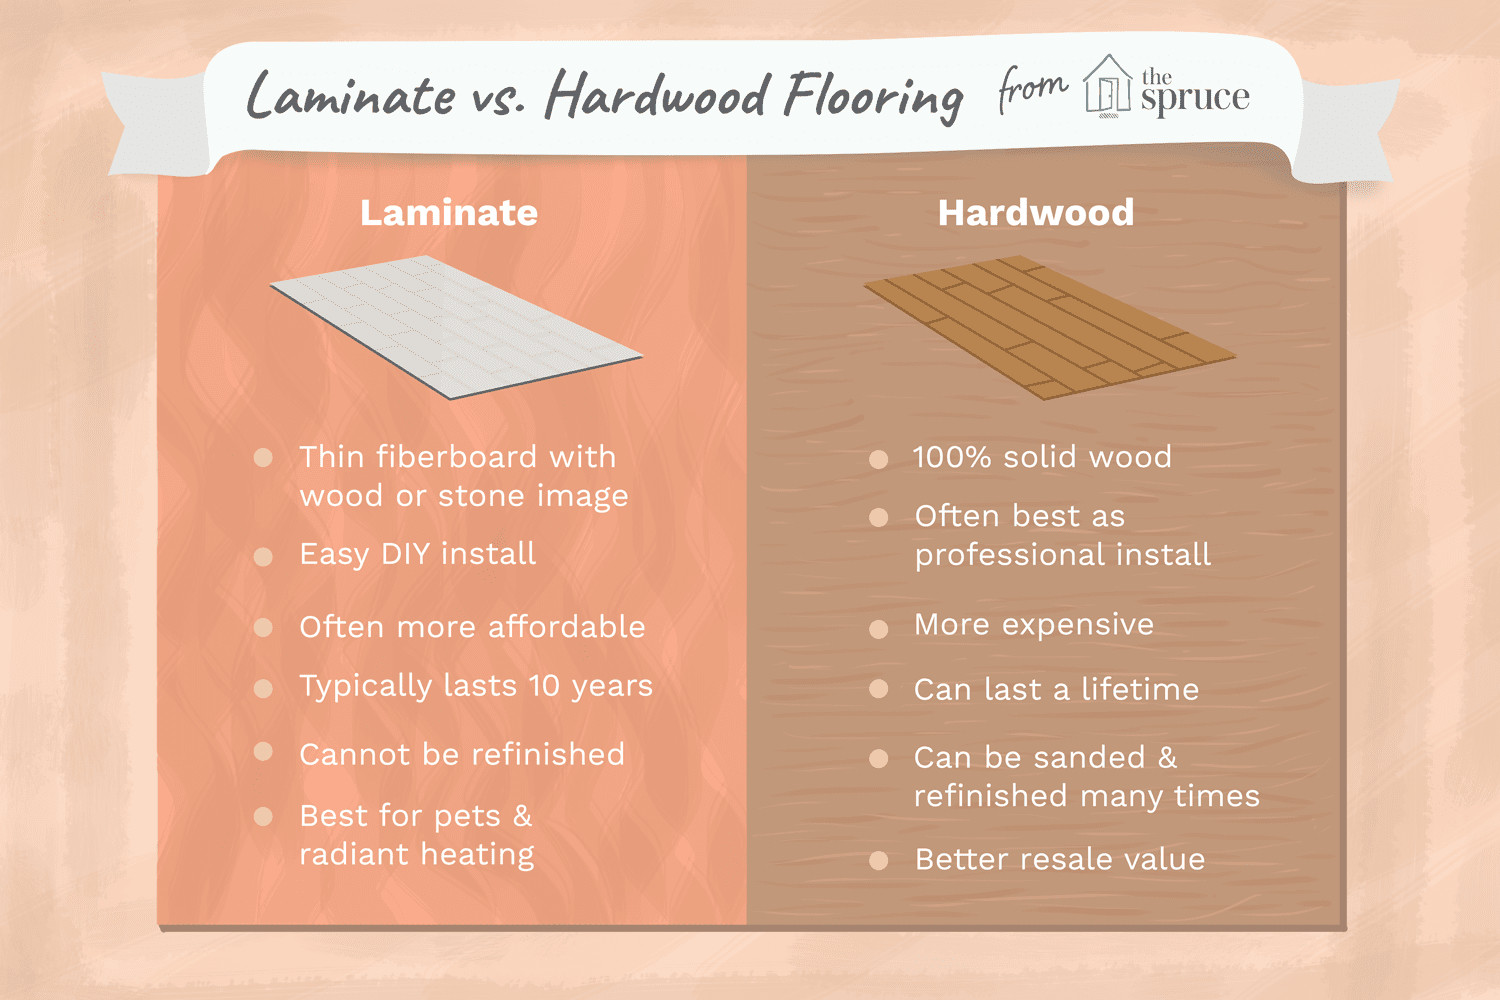 average cost to install hardwood flooring per square foot of laminate vs hardwood doesnt have to be a hard decision for laminate vs hardwood flooring how they compare 1821870 final 5bae84f24cedfd0026f4205d